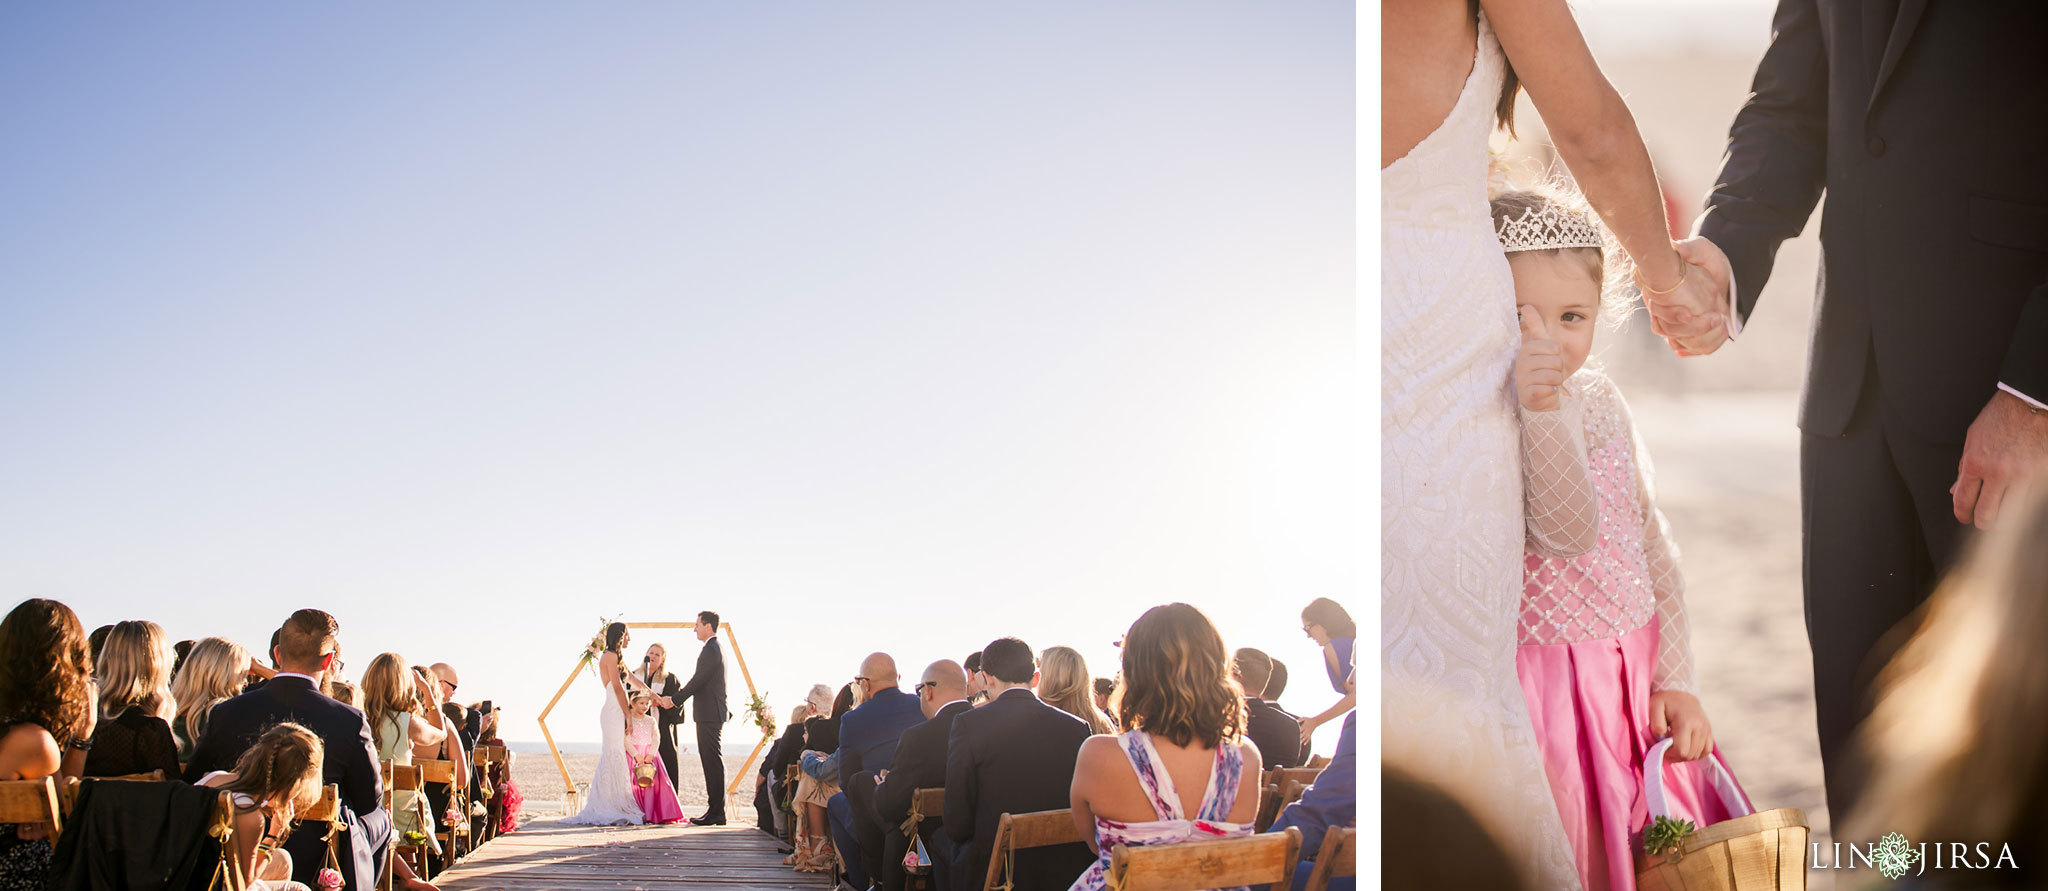 21 Shutters on the Beach Santa Monica Wedding Photography